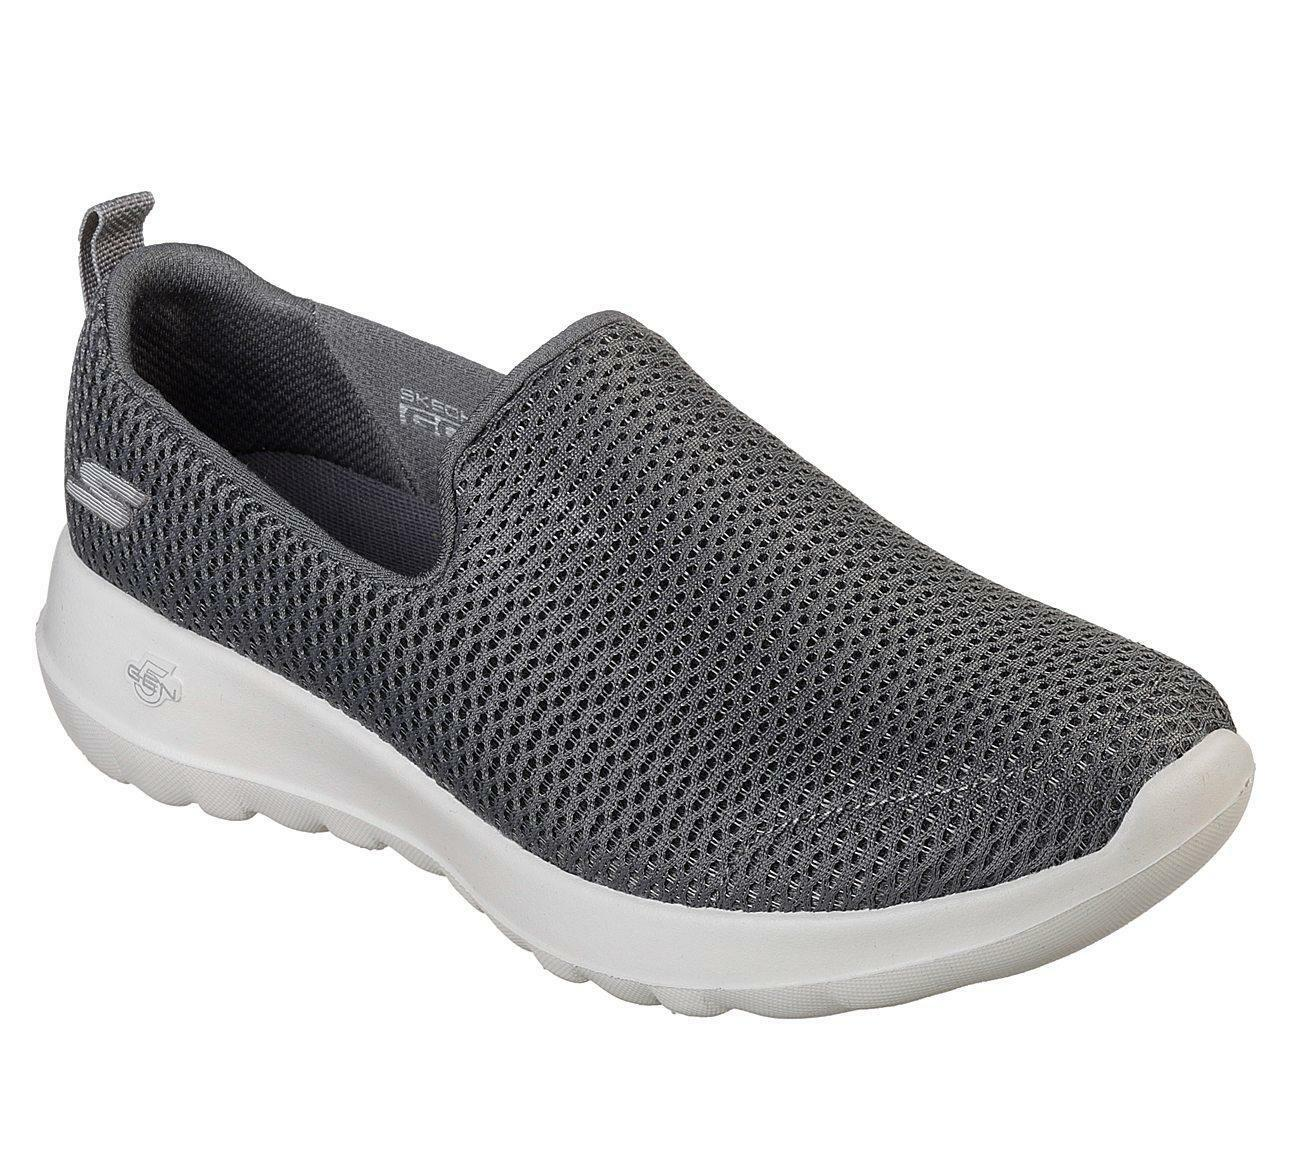 Womens Skechers Go Walk Trainer Pump Pump Pump Casual Memory Foam Slip On shoes 96a19d